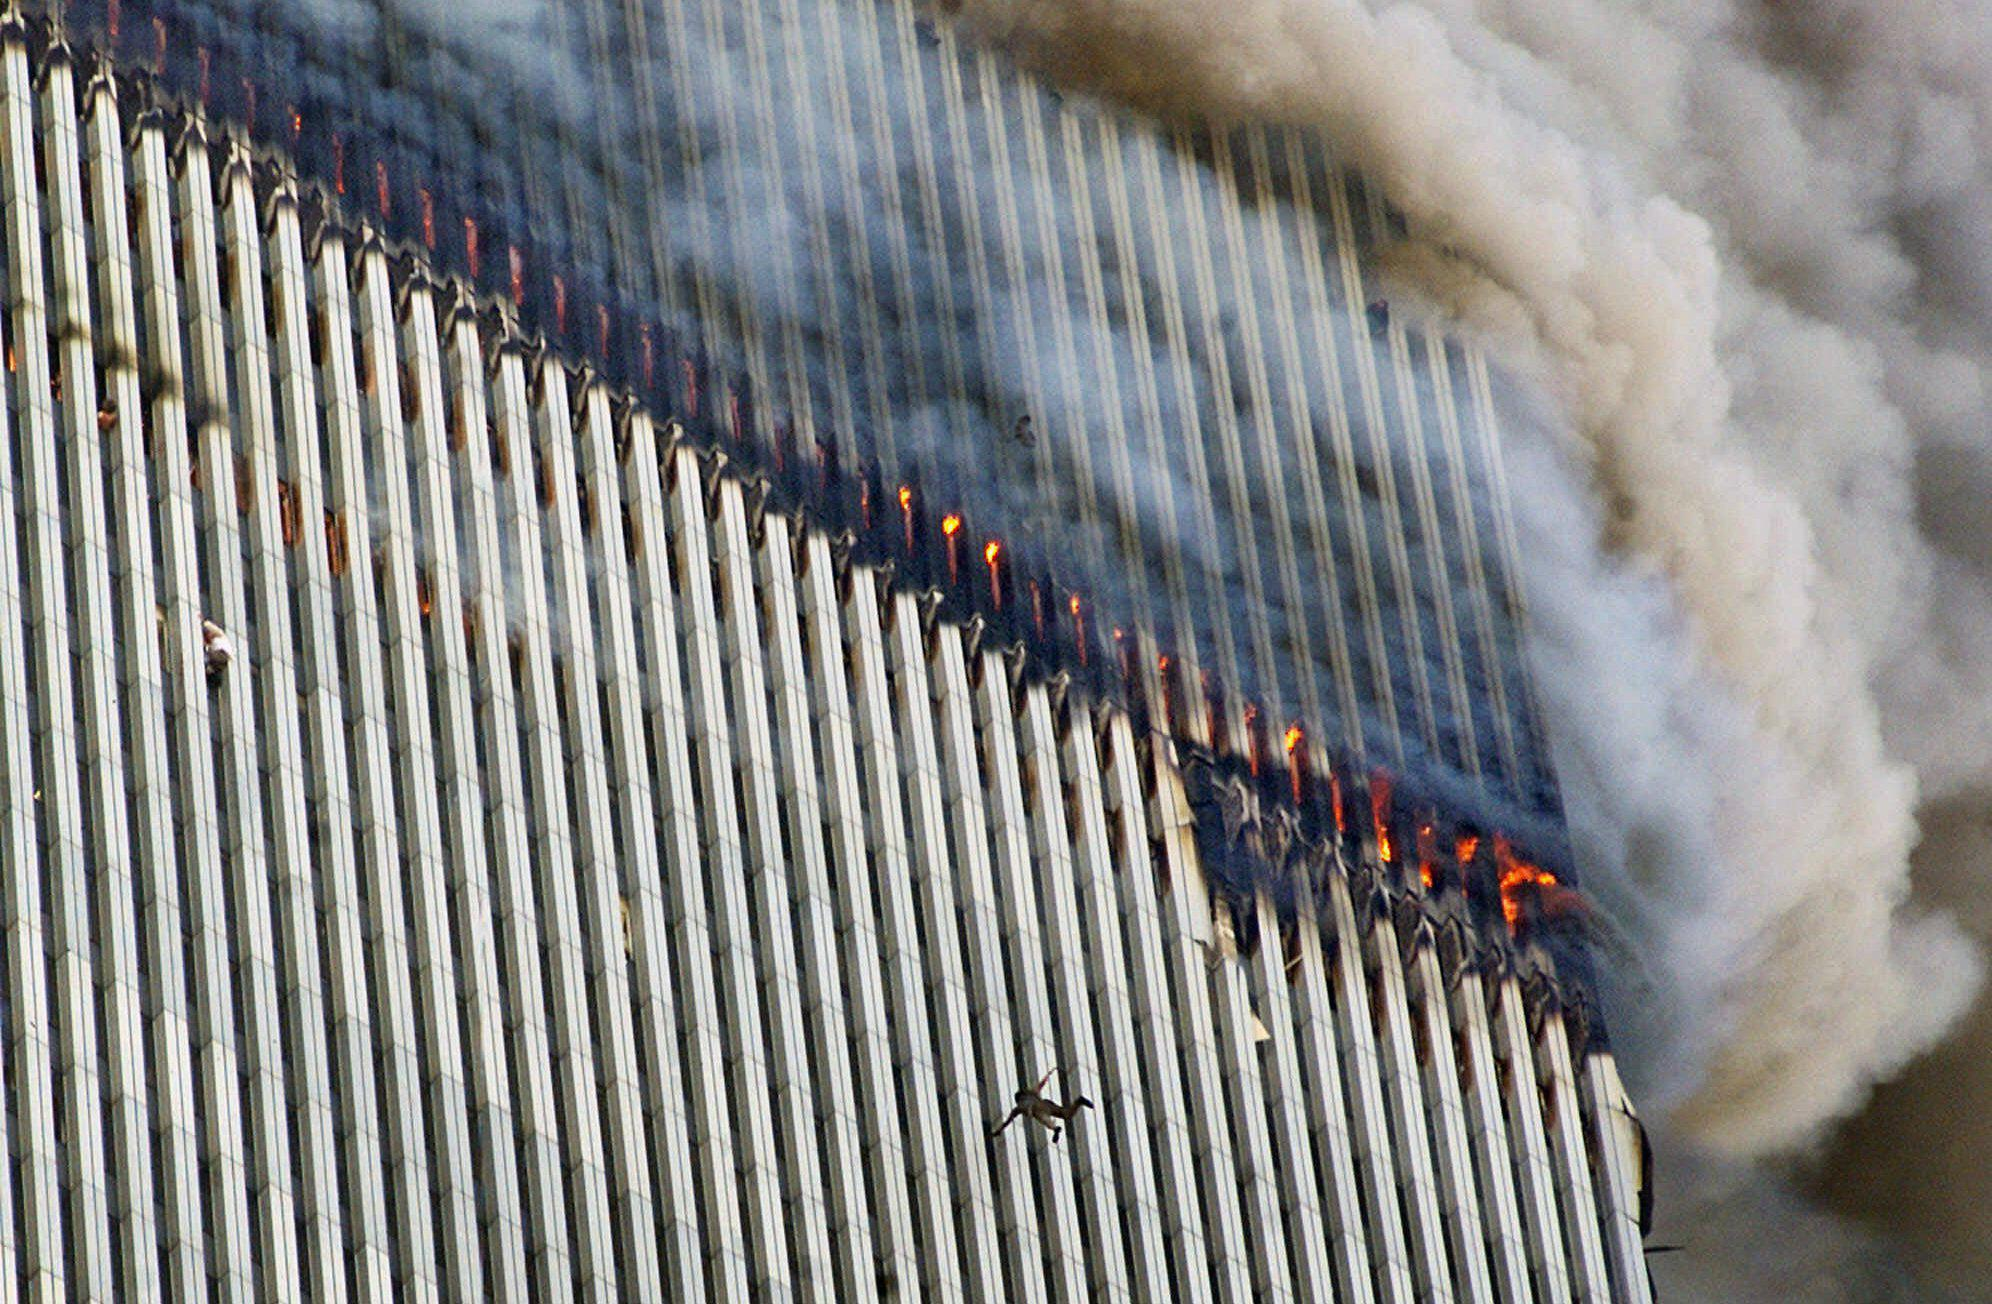 A person falls from the north tower of New York's World Trade Center as another clings to the outside, left, while smoke and fire billow from the building, Tuesday Sept. 11, 2001. (AP Photo/Richard Drew)